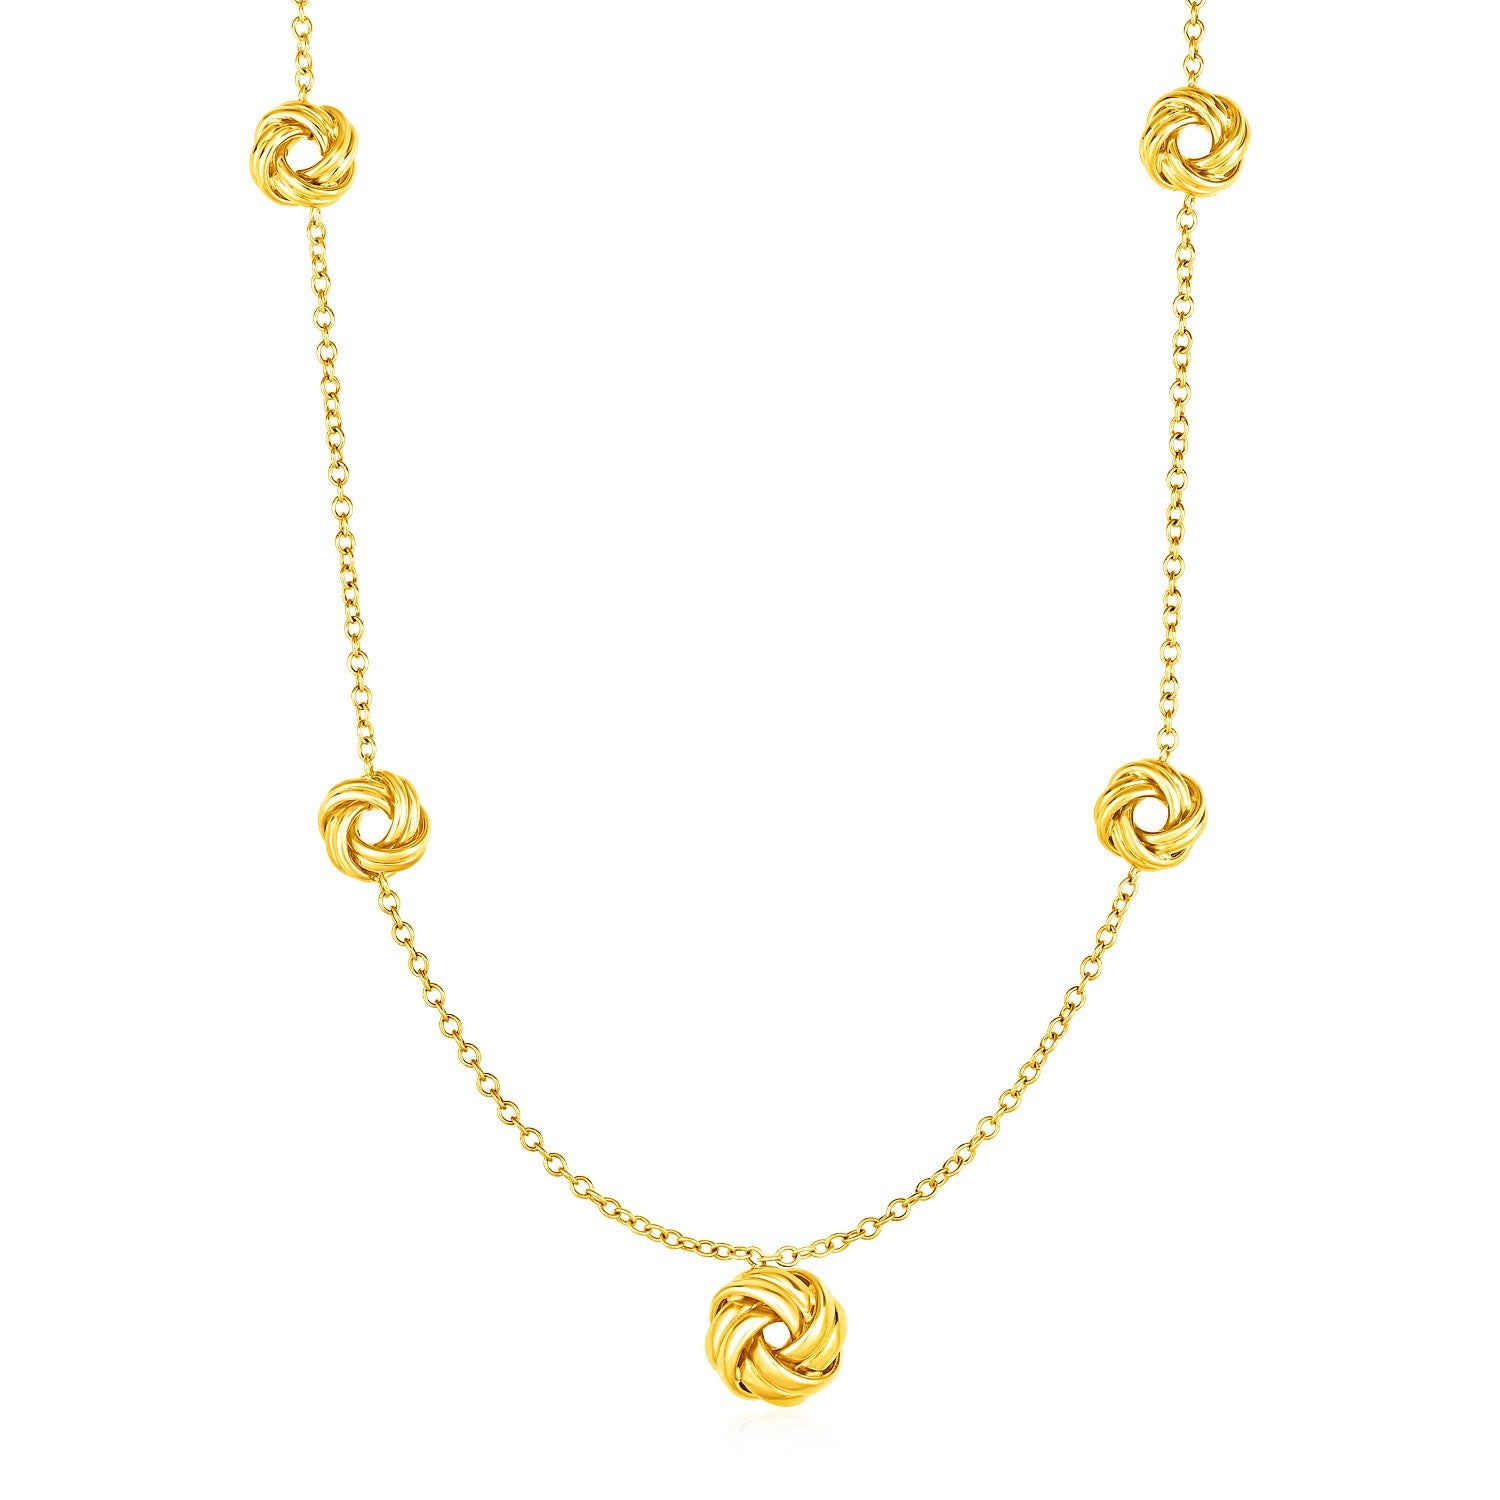 Necklace with Love Knots in 10K Yellow Gold